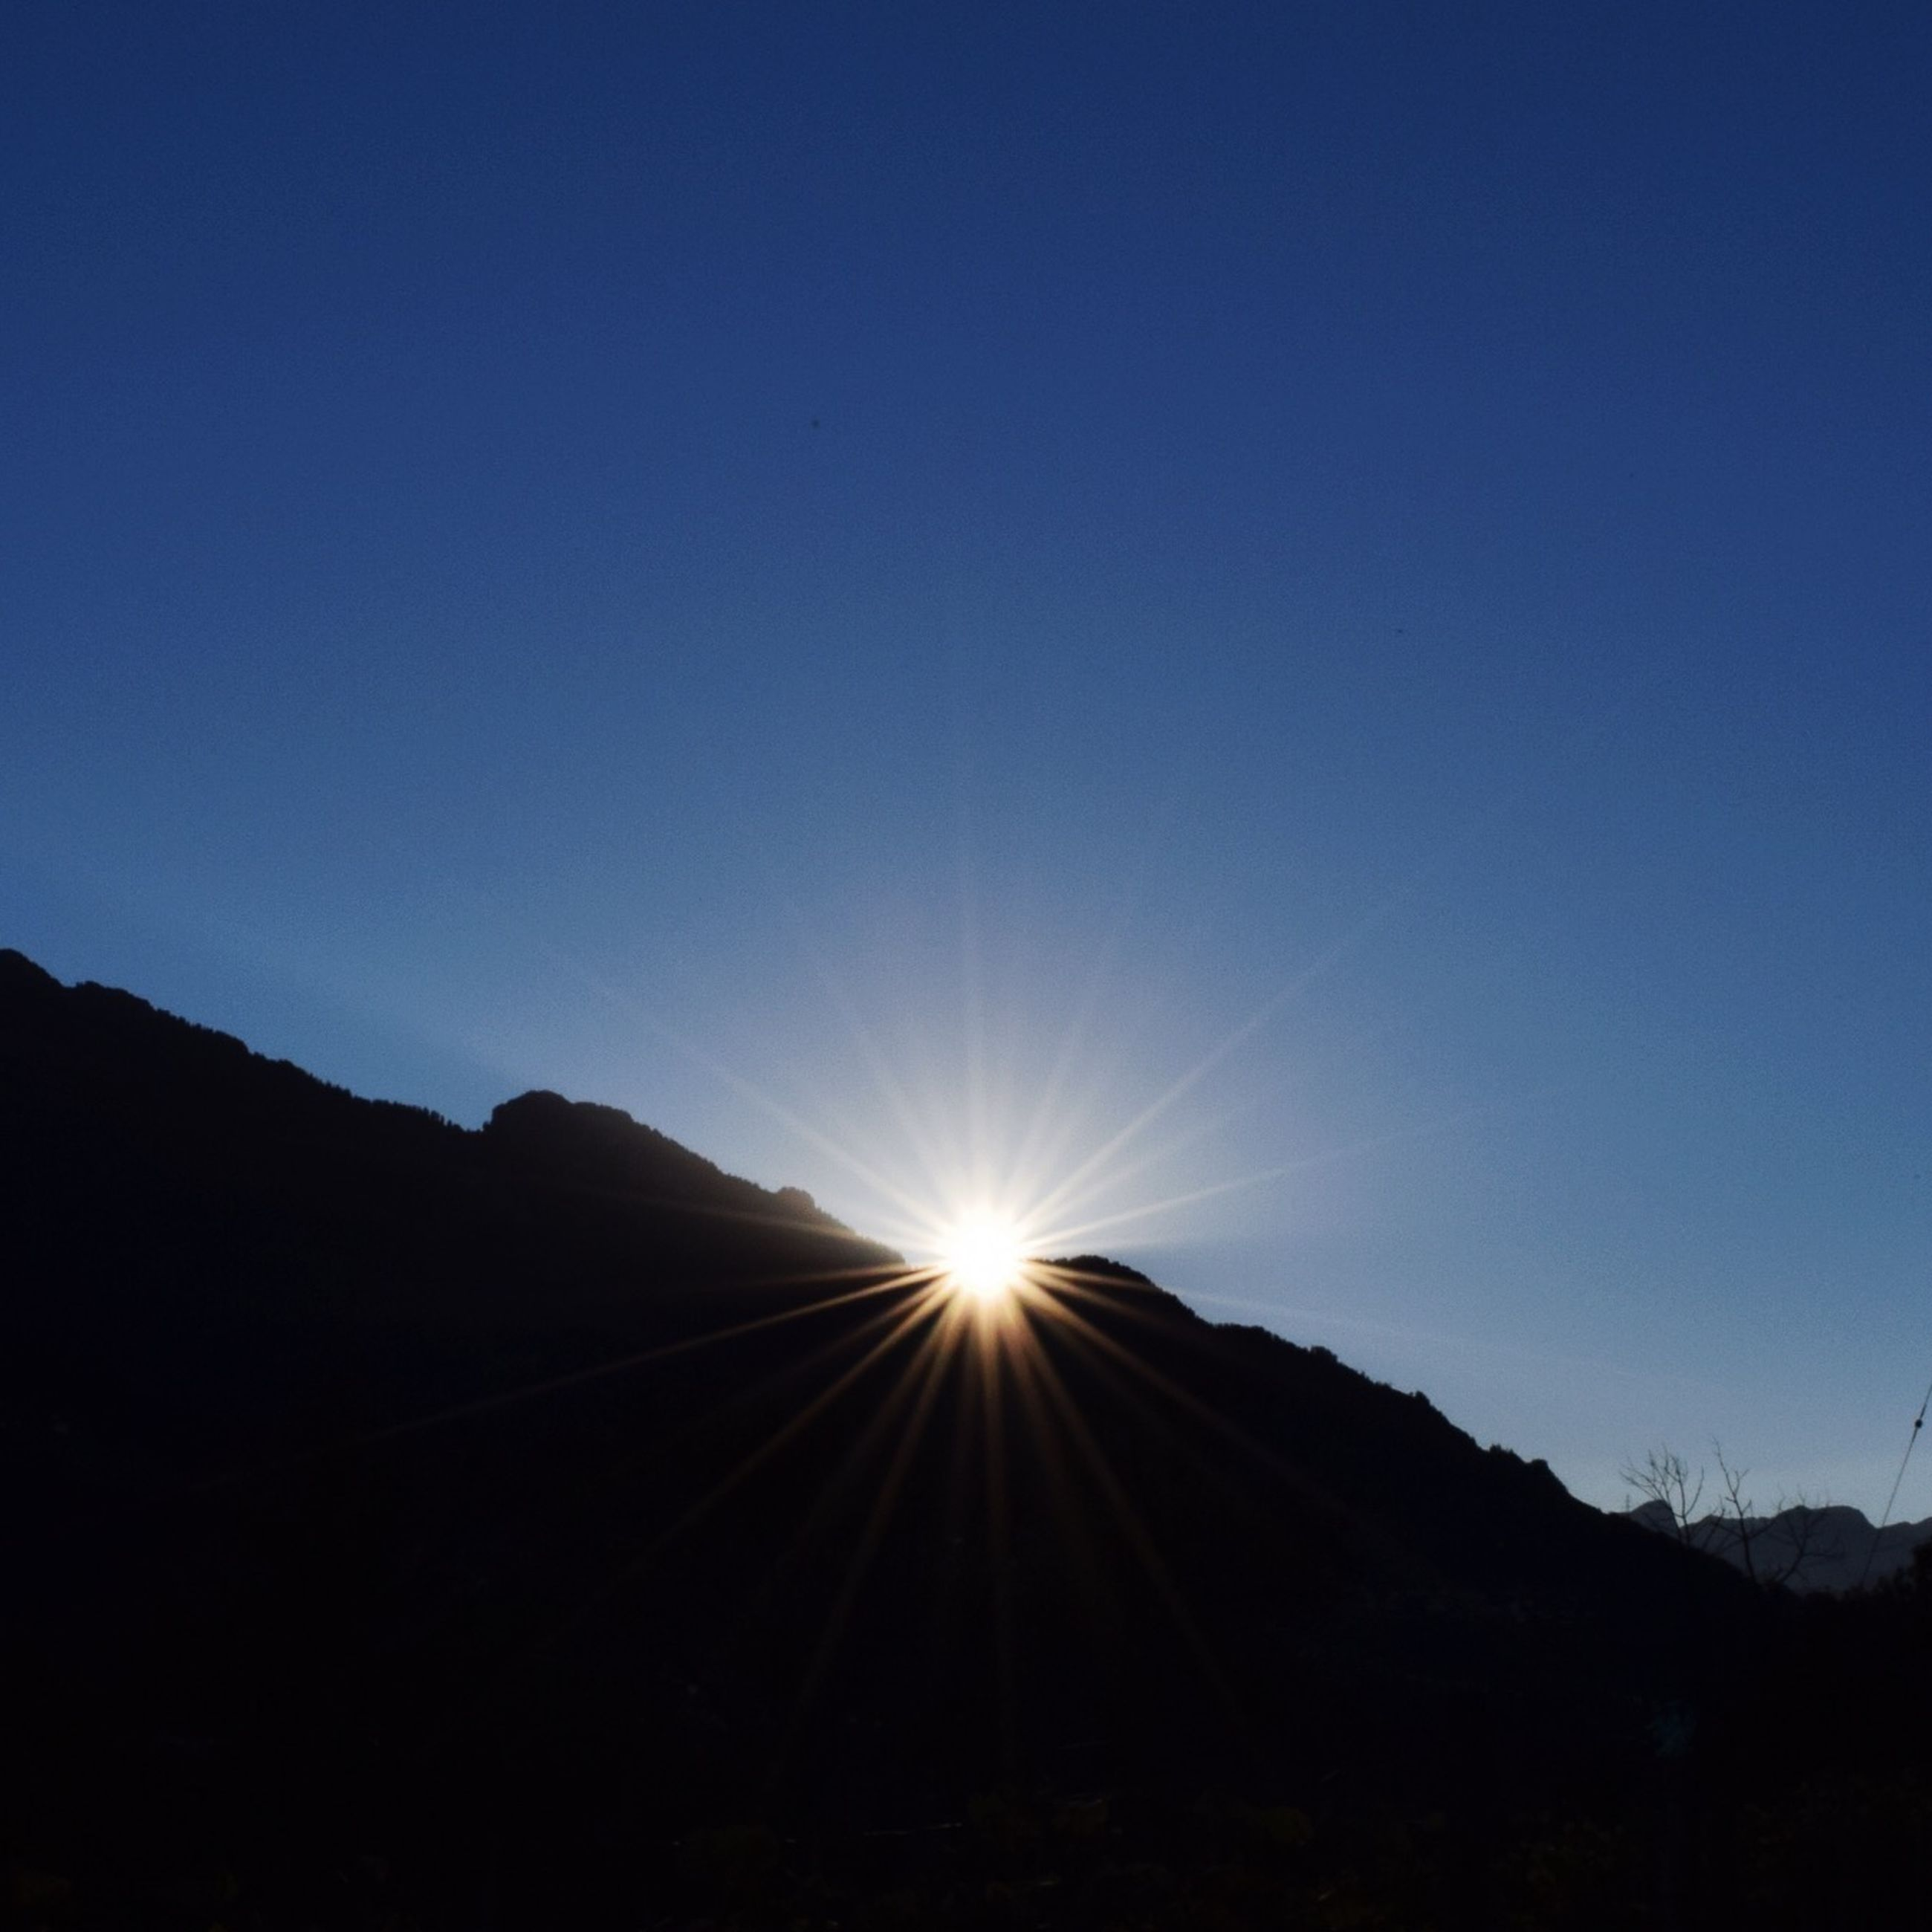 clear sky, copy space, silhouette, sun, mountain, tranquility, tranquil scene, scenics, blue, beauty in nature, sunlight, nature, mountain range, sunbeam, lens flare, low angle view, landscape, idyllic, outdoors, non-urban scene